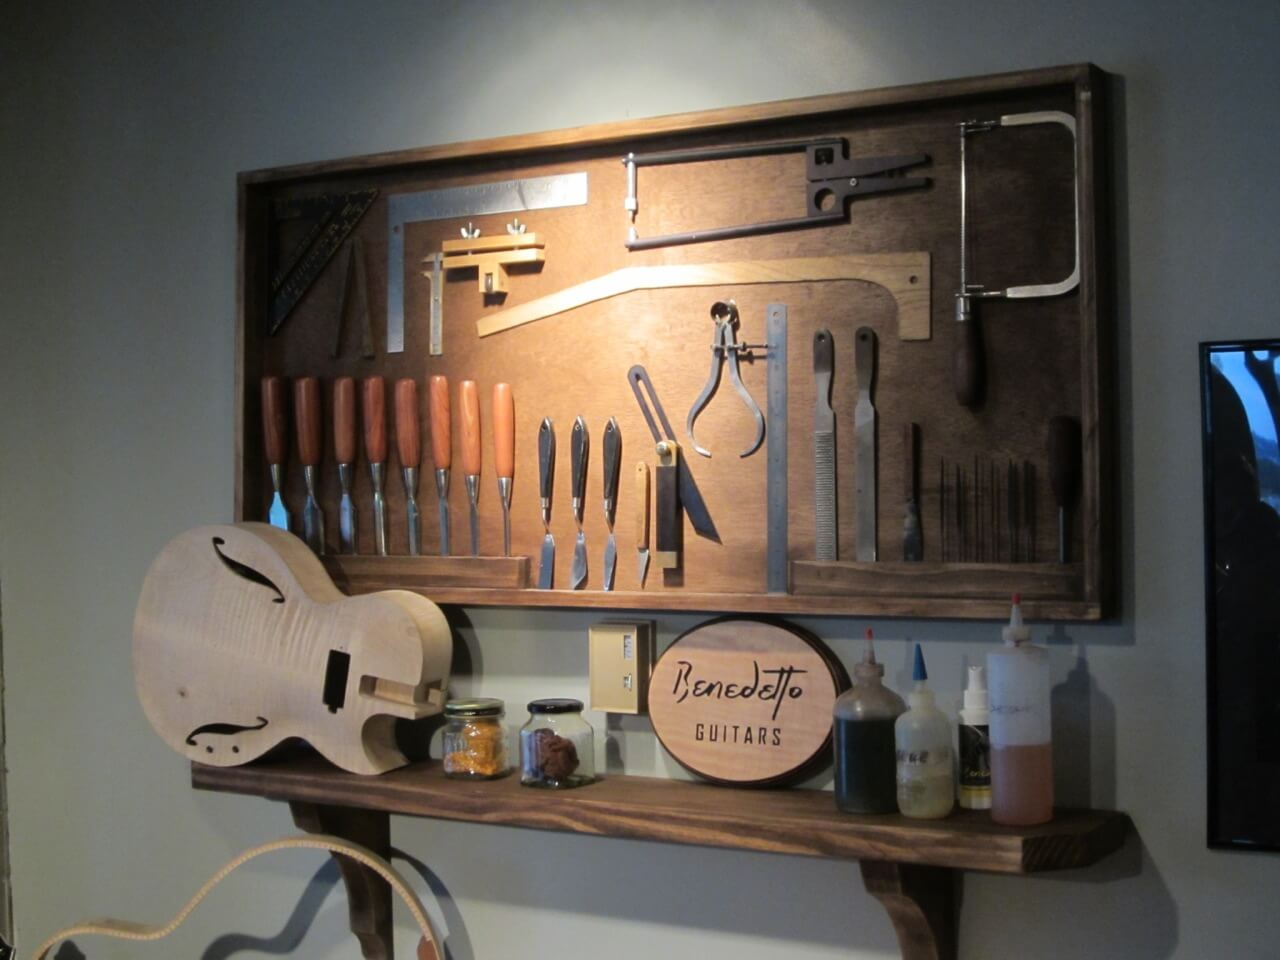 I don't know why i didn't take any photos showing the insides of guitars, but this display of luthier tools speaks to the nature of the craft.